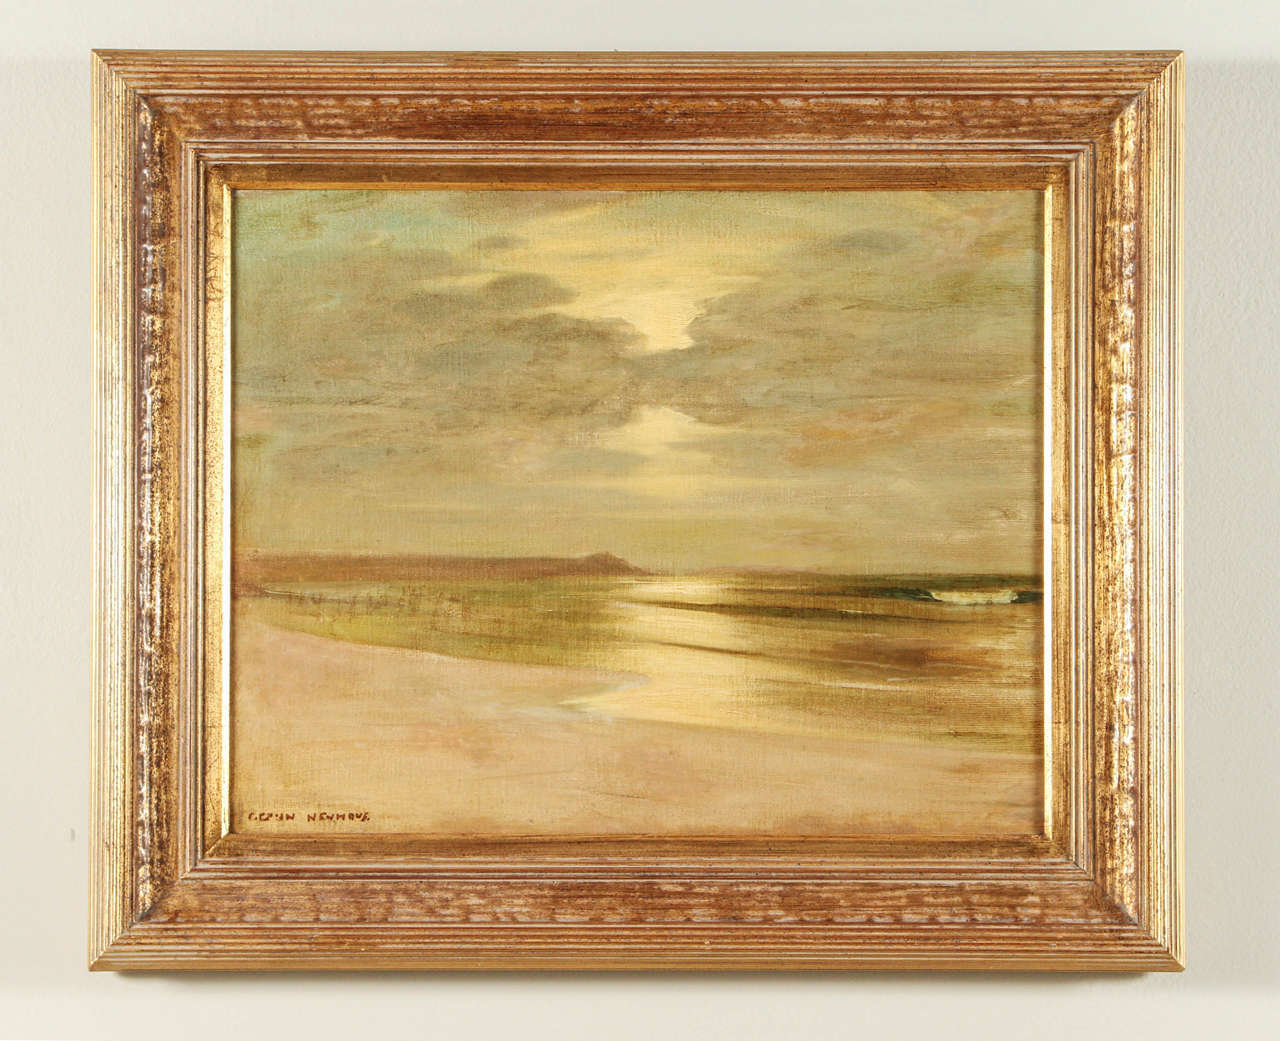 Early California Impressionist oil on canvas by Karl Eugen Neuhaus. German artist who settled in California in the early 1900s, known for his Tonalism - plein aire paintings of the California landscape. Oil on canvas. Painting fully restored.